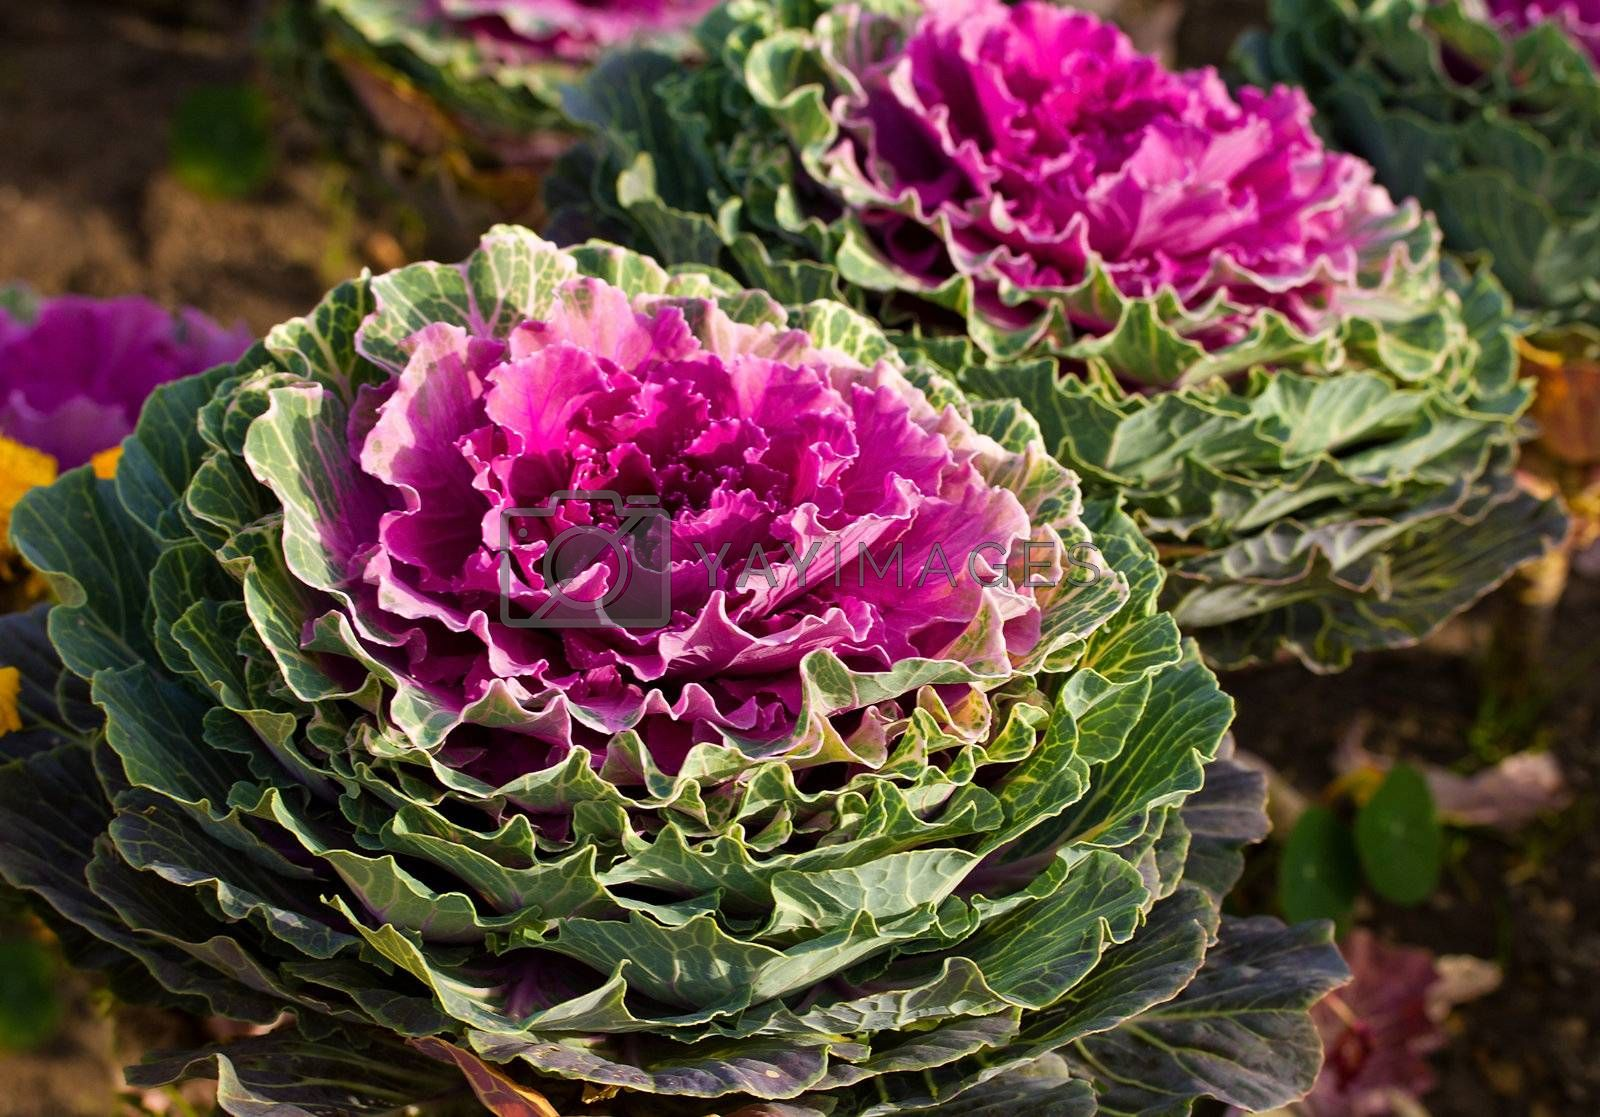 decorative cabbage by Alekcey